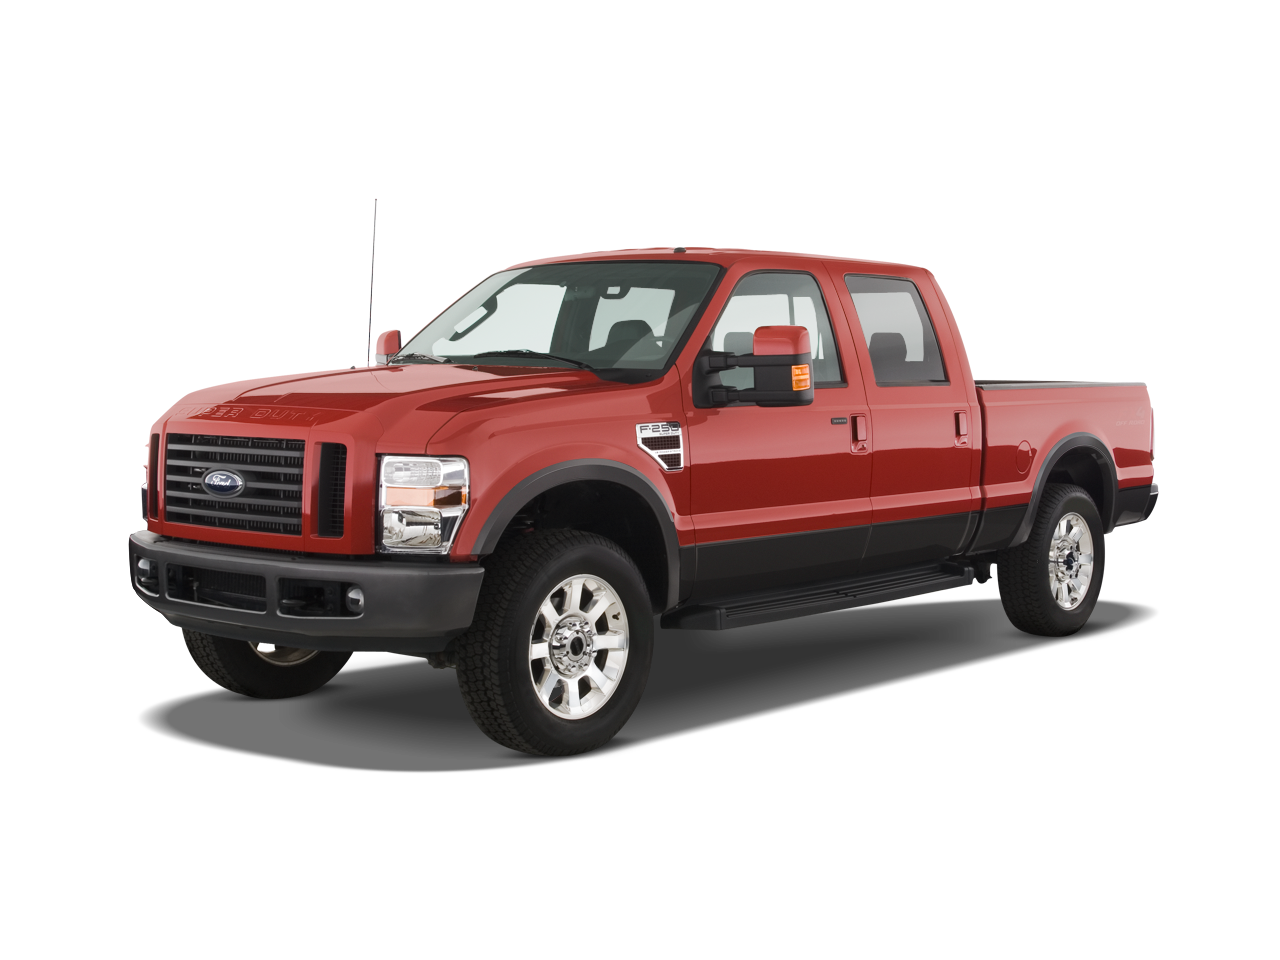 Car clipart front view banner black and white Ford F-250 super duty PNG Clipart - Download free images in PNG banner black and white